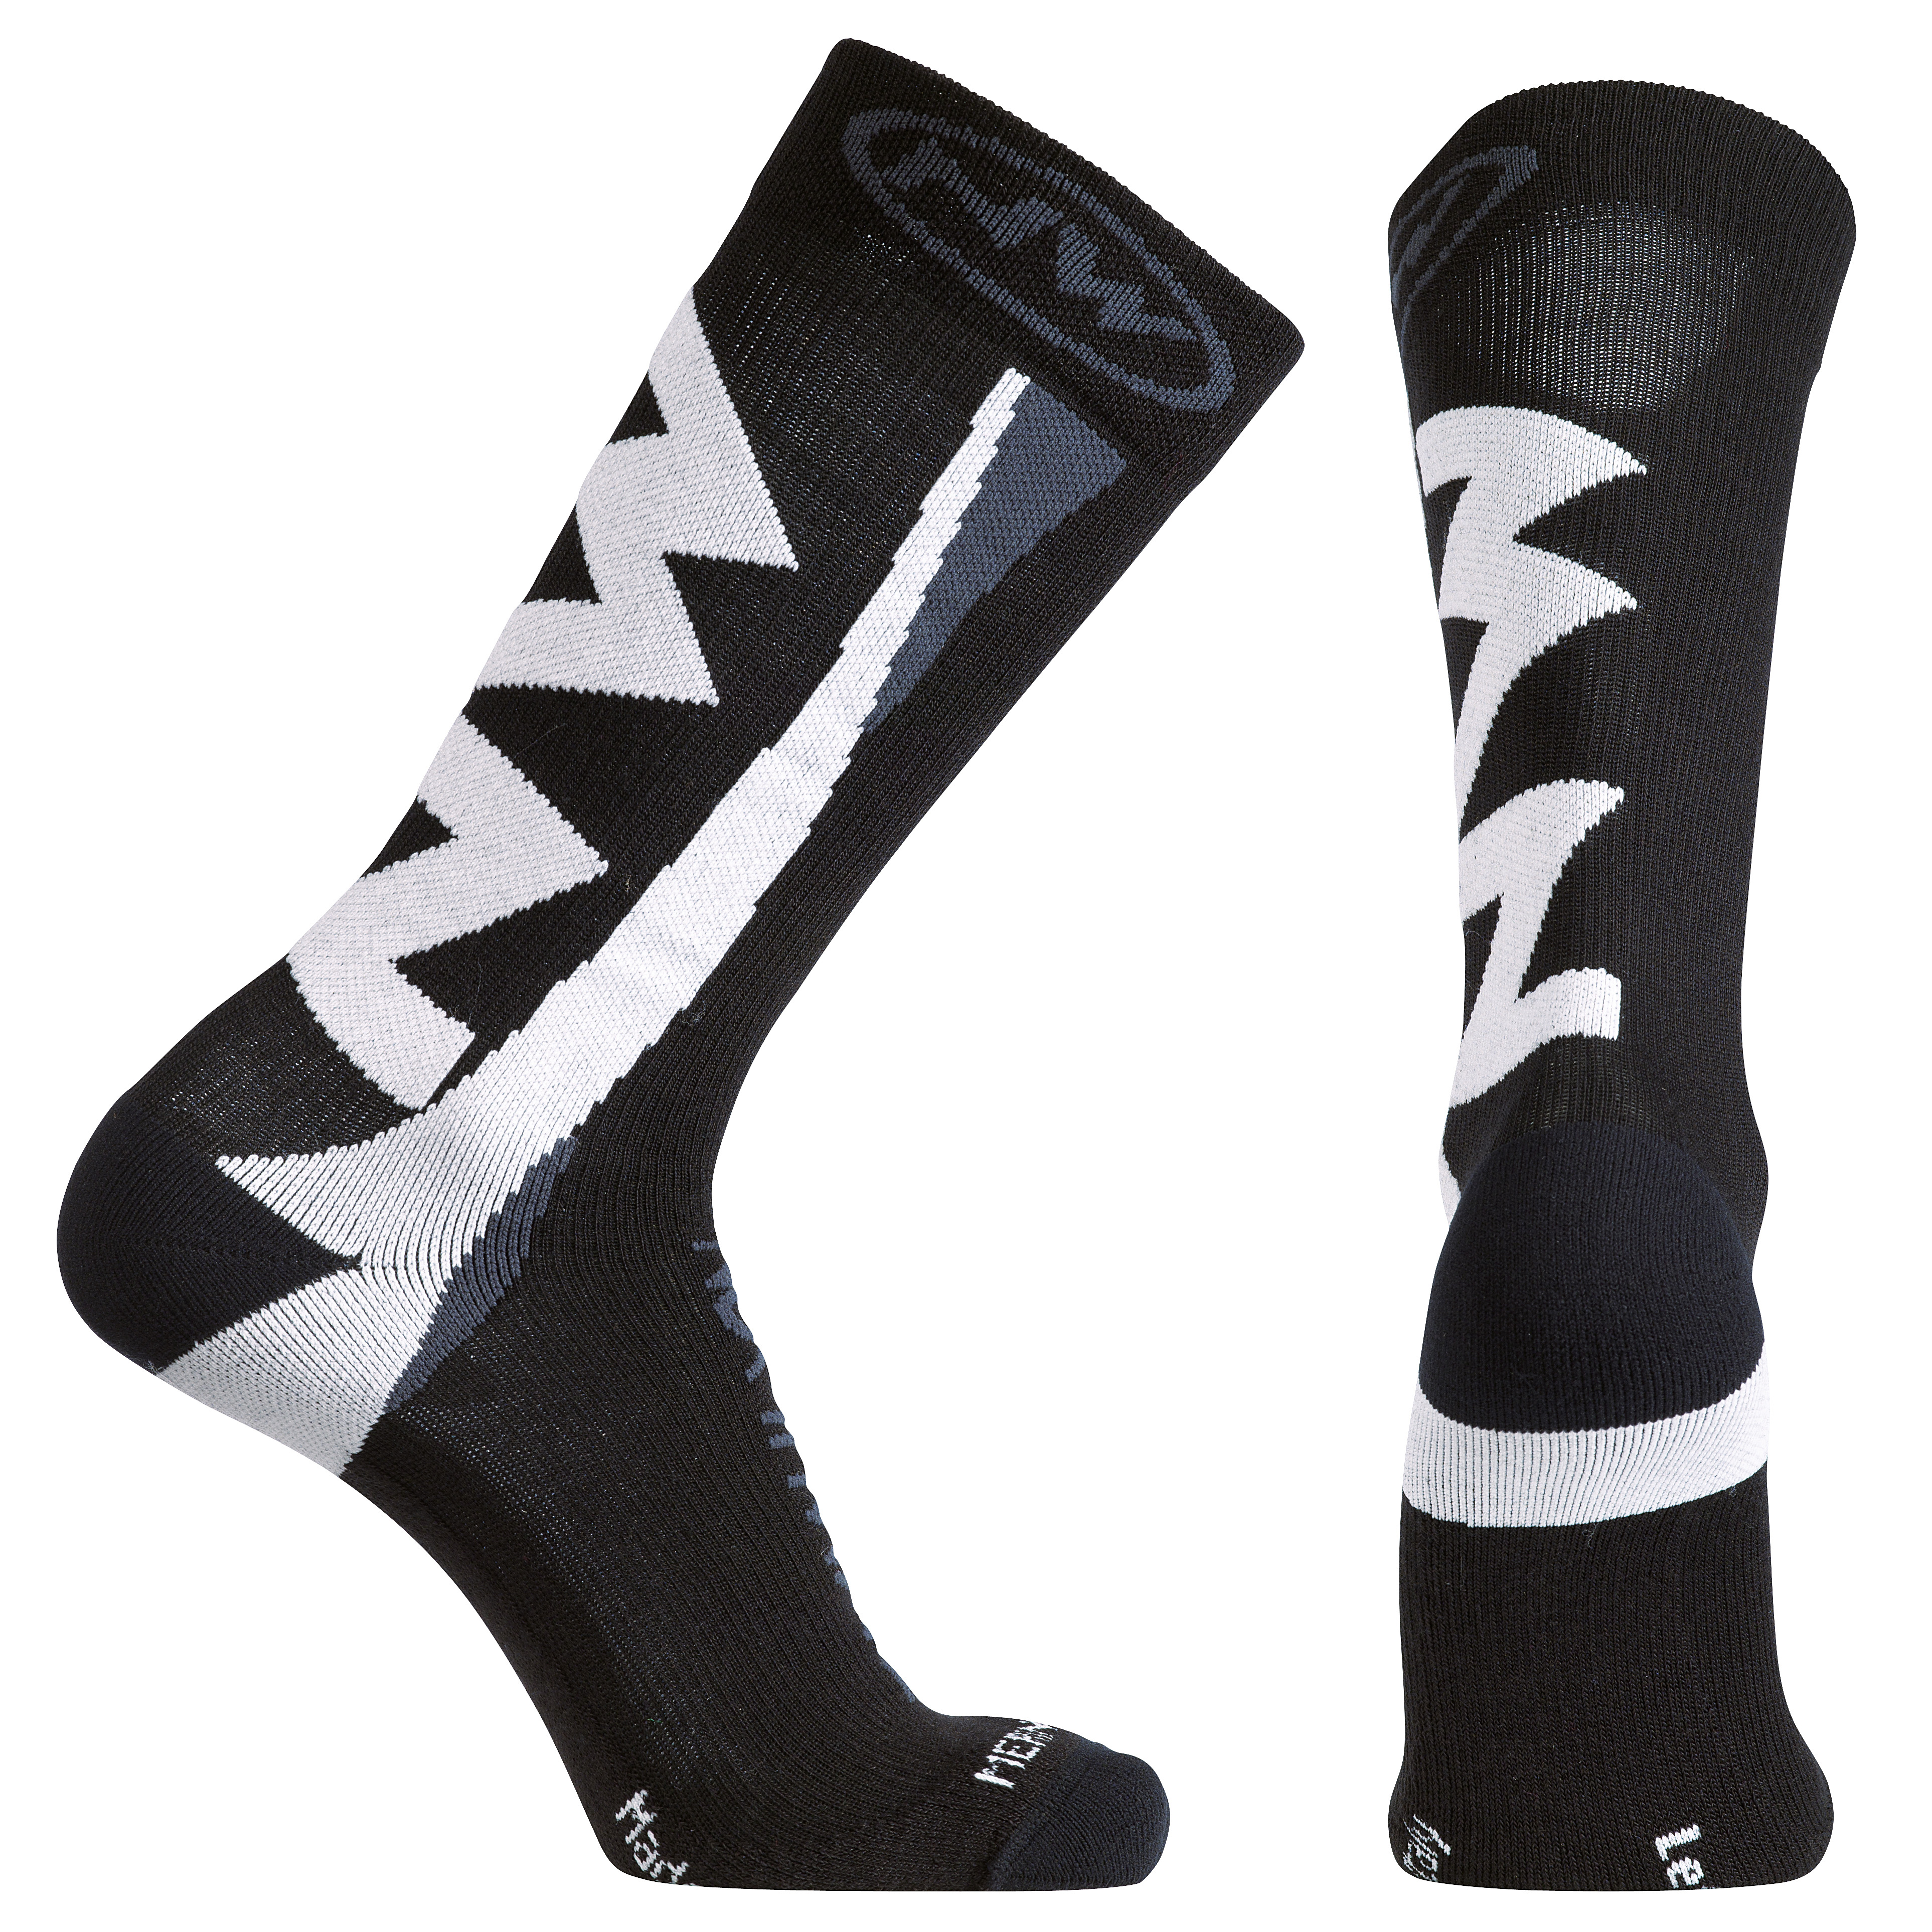 NORTHWAVE Extreme Winter Socks